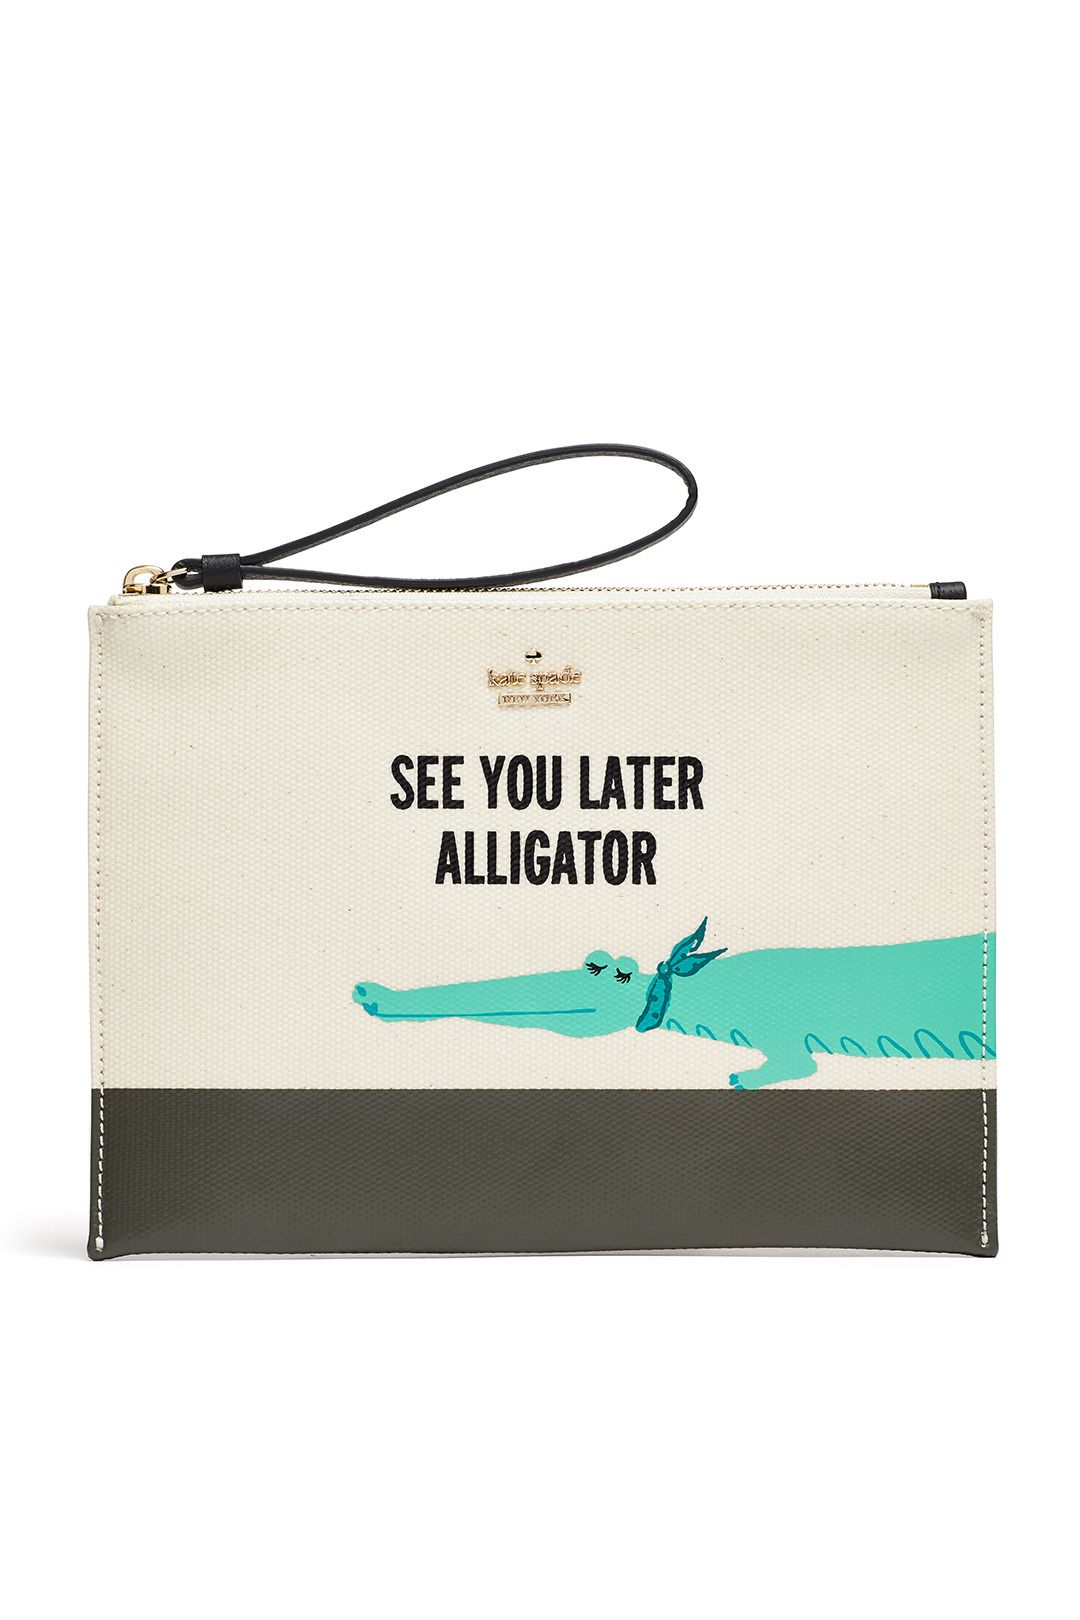 Rent Gator Bella Pouch By Kate Spade New York Accessories